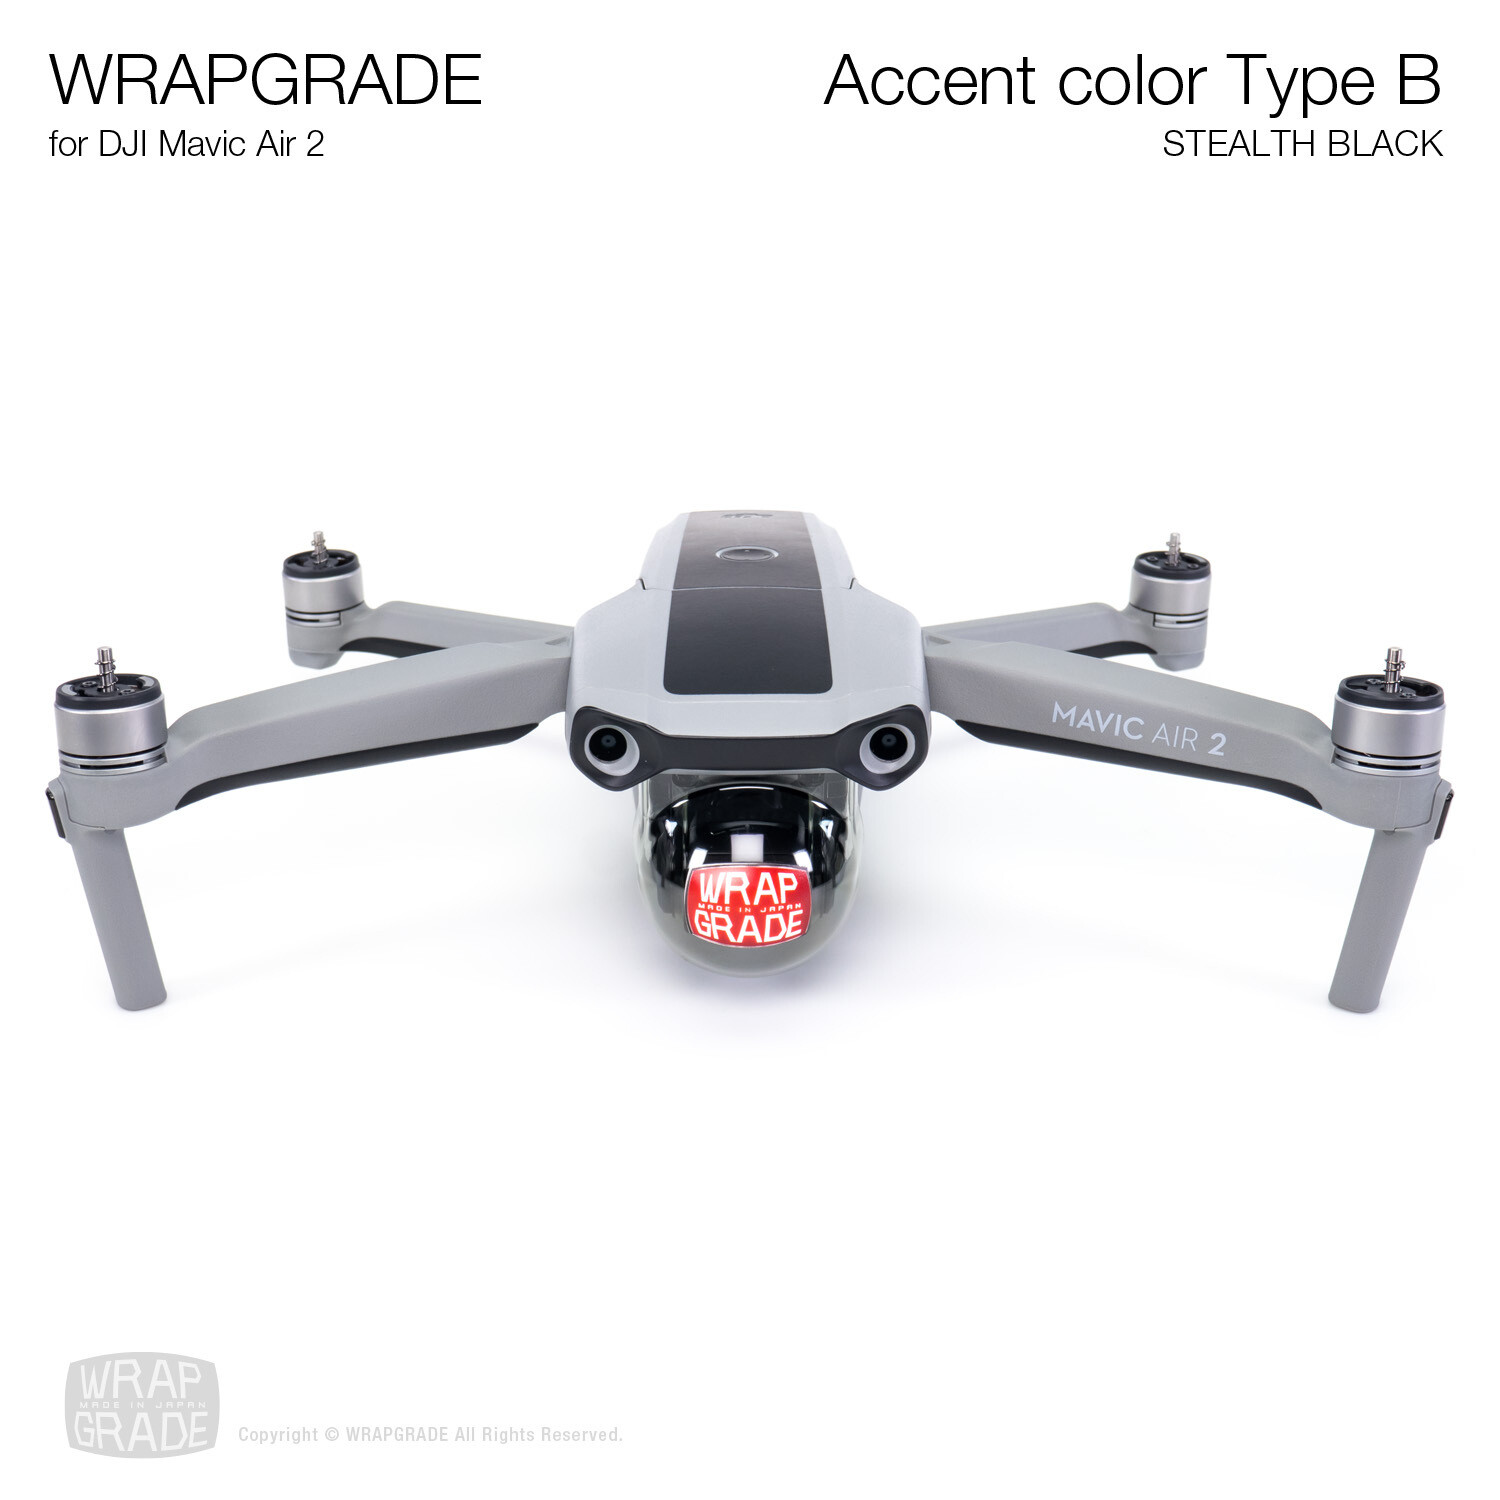 Wrapgrade for DJI Mavic Air 2 | Accent Color B (STEALTH BLACK)